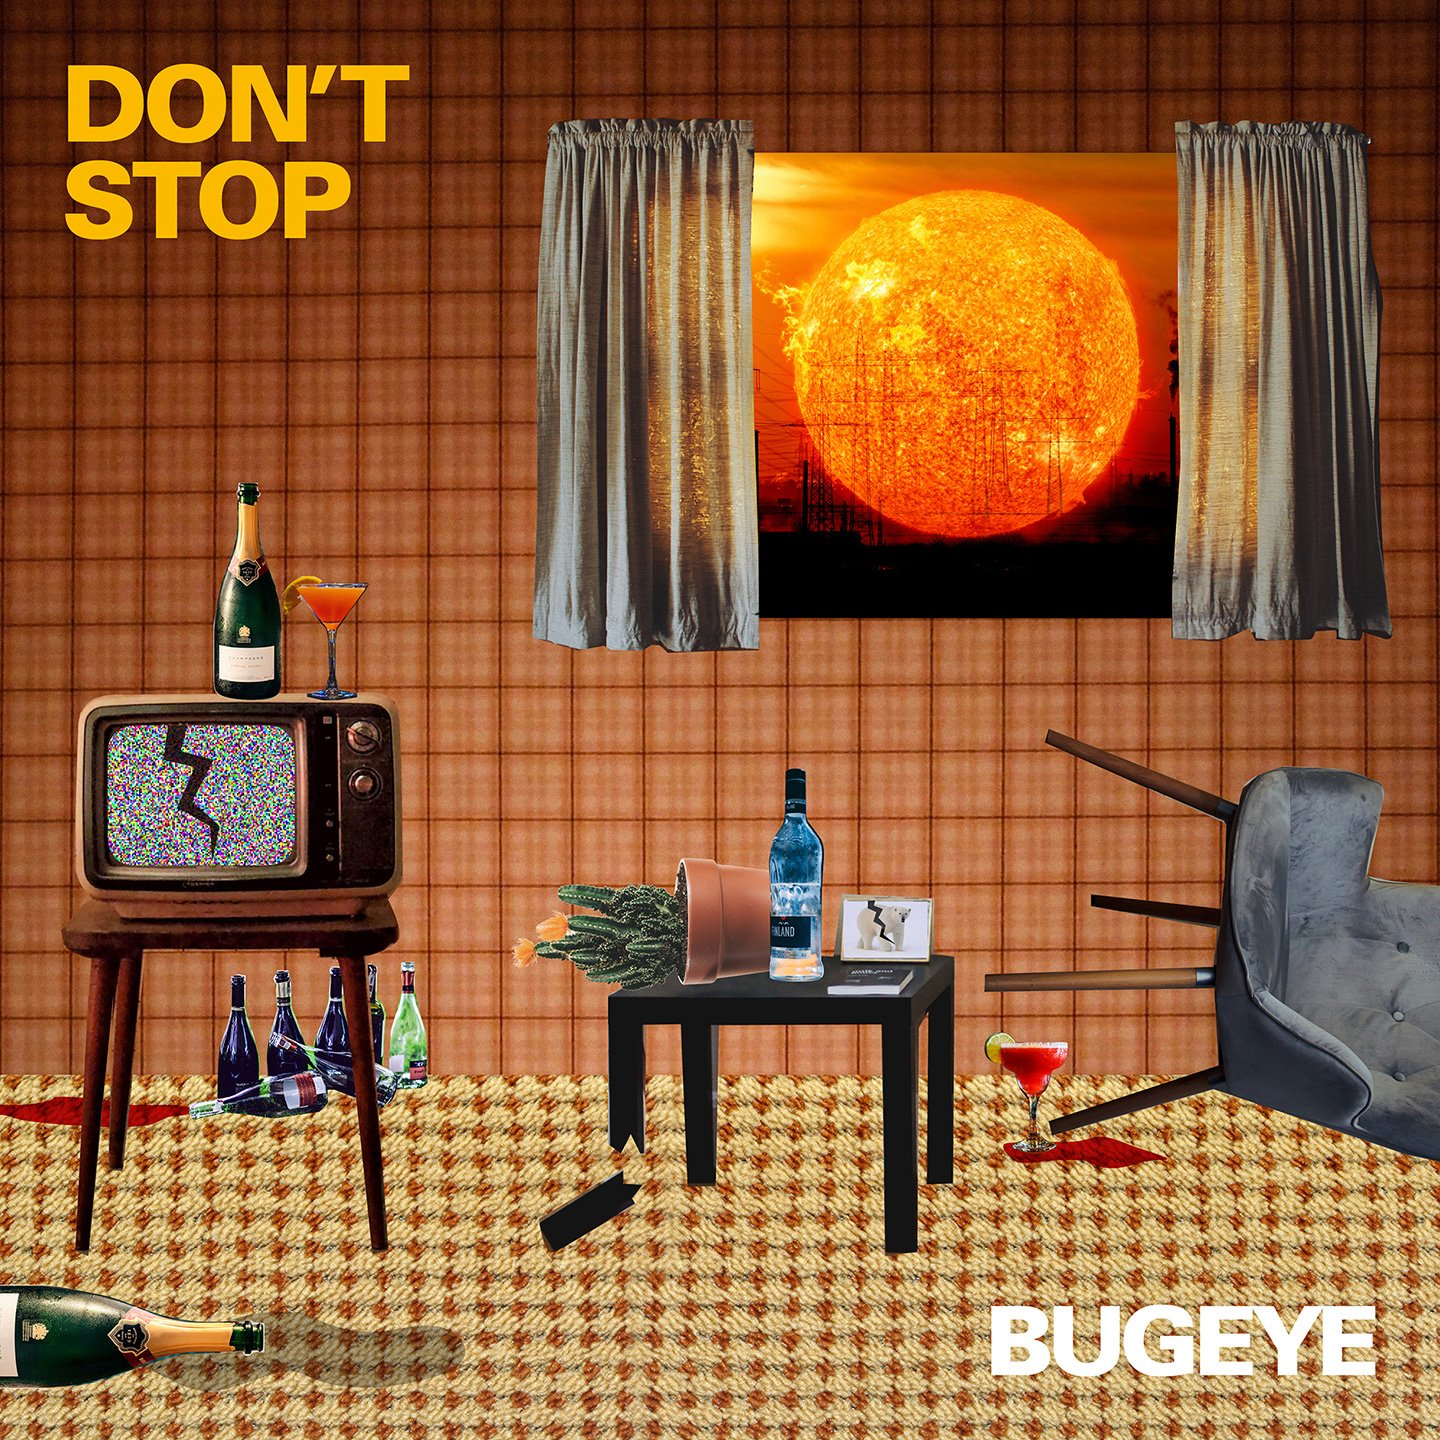 TRACK PREMIERE: Bugeye - 'Don't Stop'